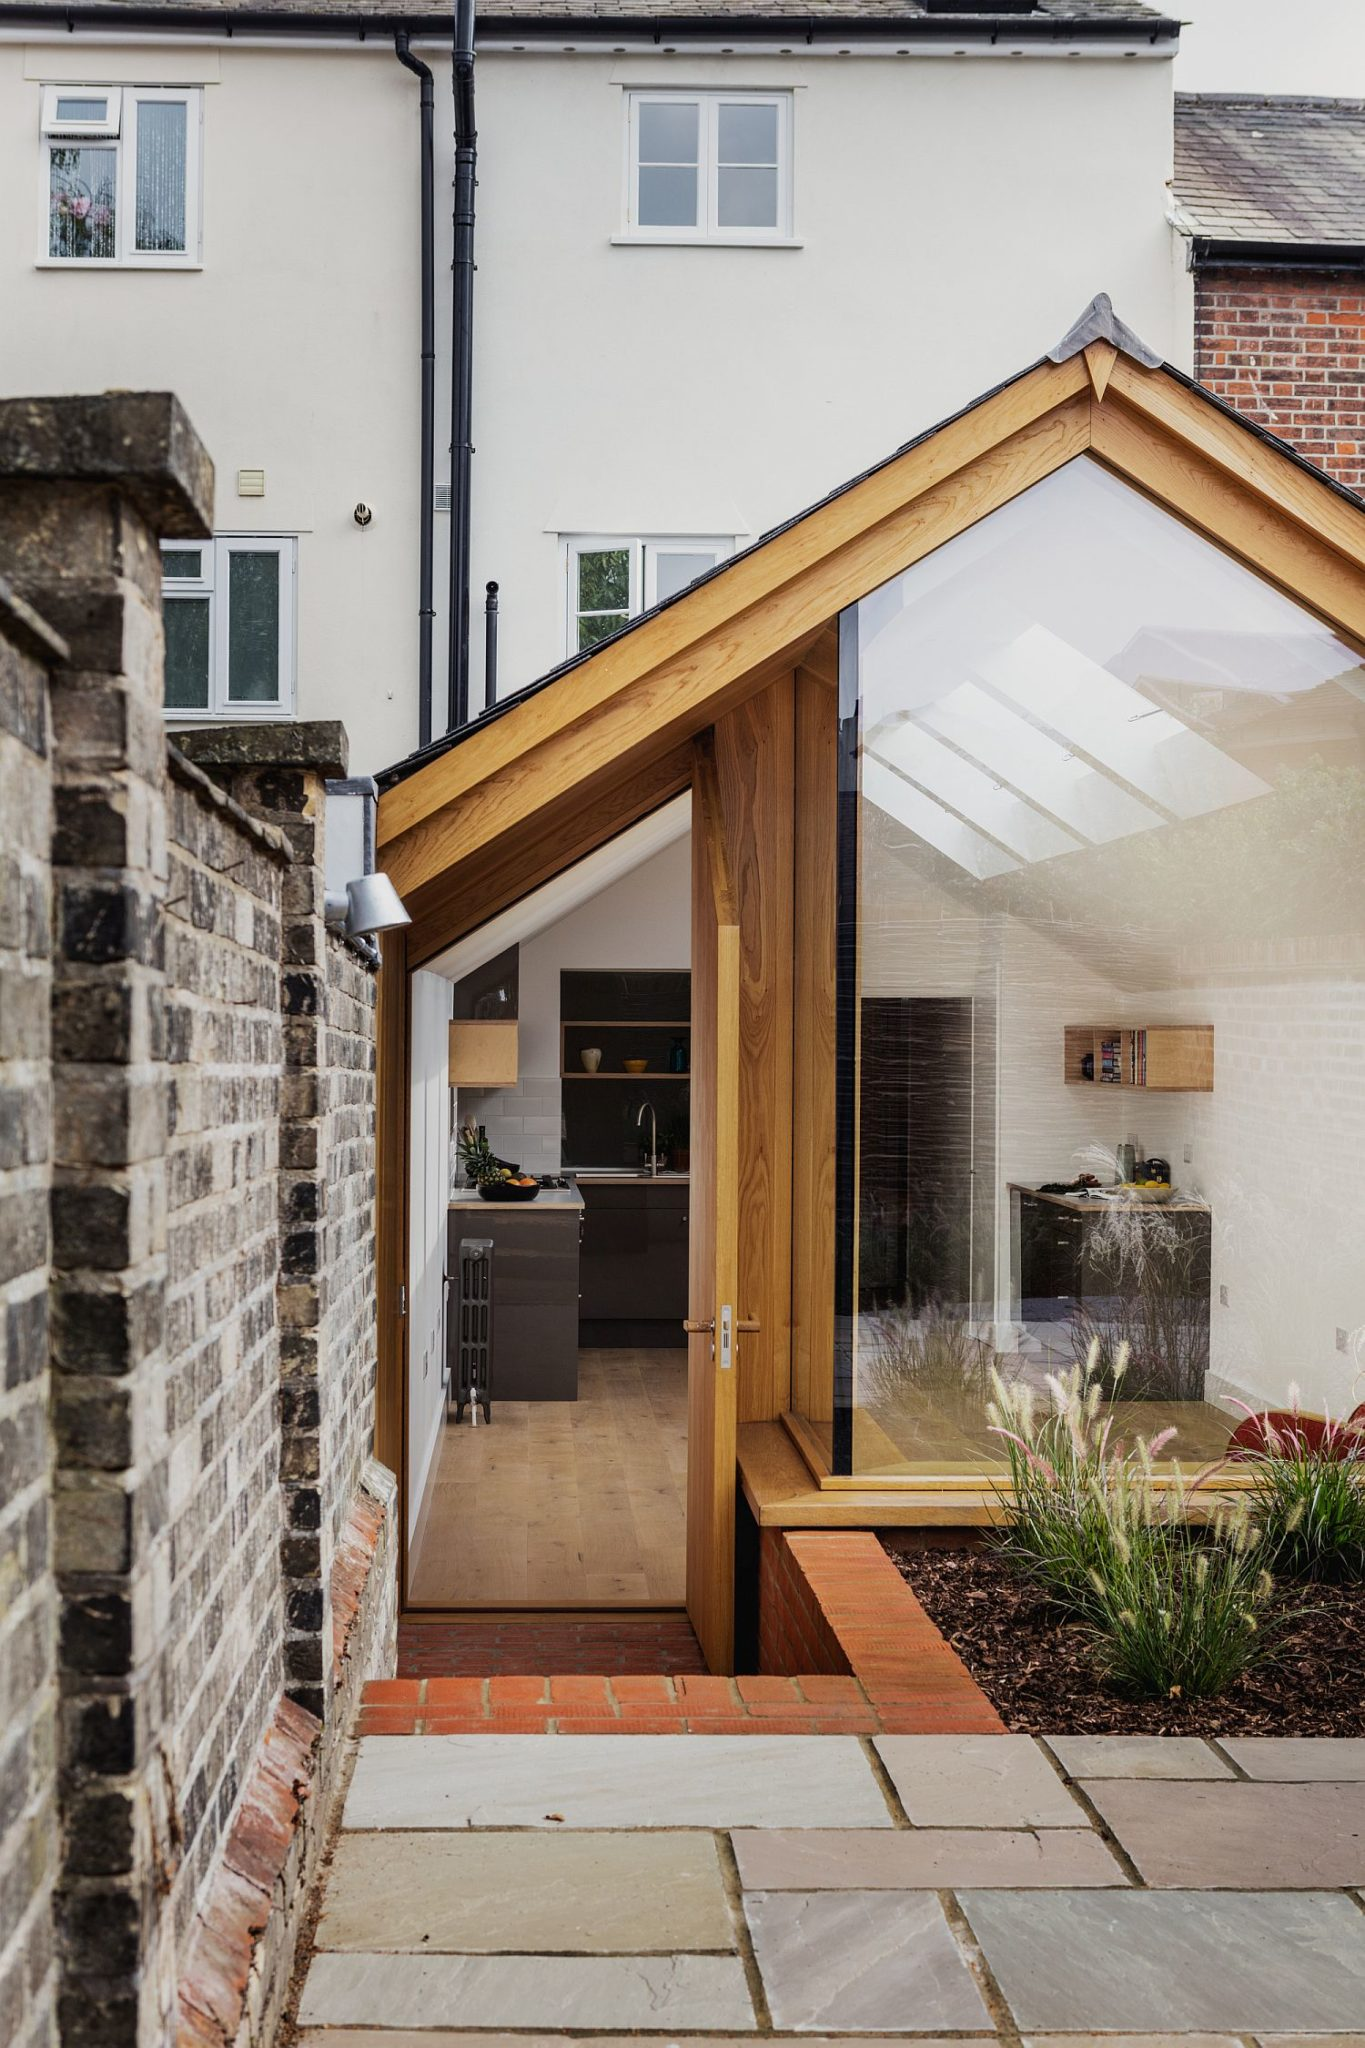 A-difference-in-flooring-along-with-height-delineates-the-garden-from-the-extension